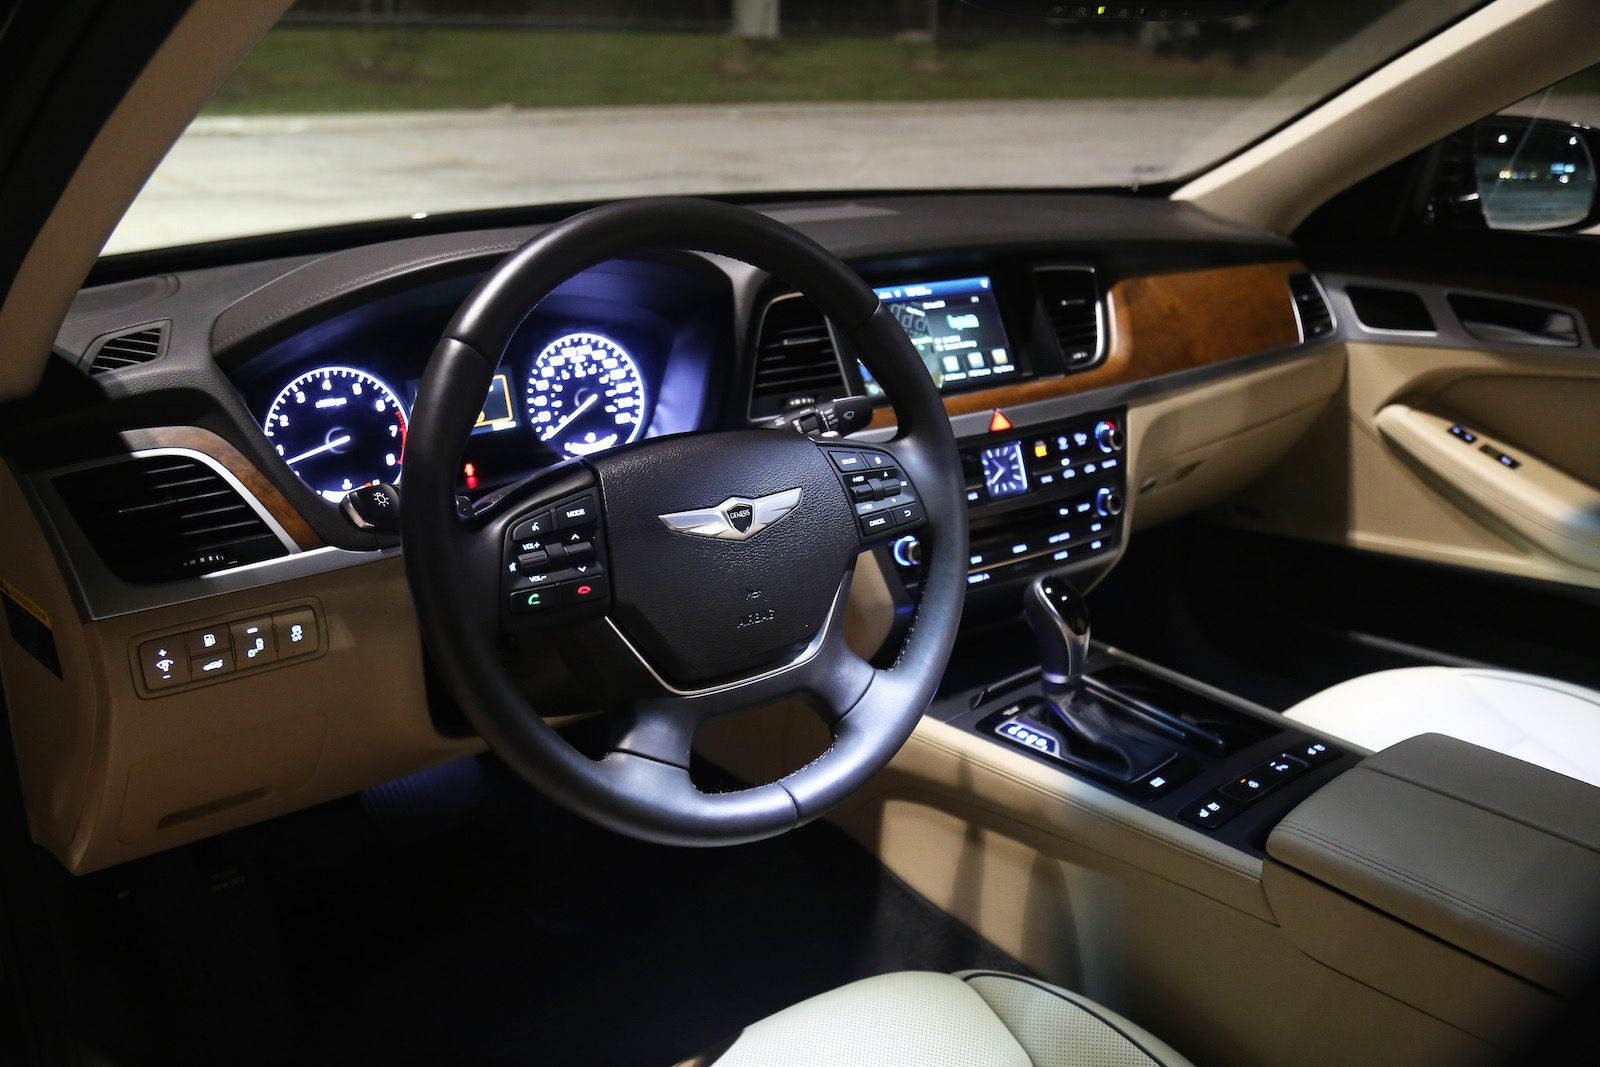 Hyundai genesis interior is amazing with its luxurious design and arrangement inside the newest one of this car will amaze people when they drive the car